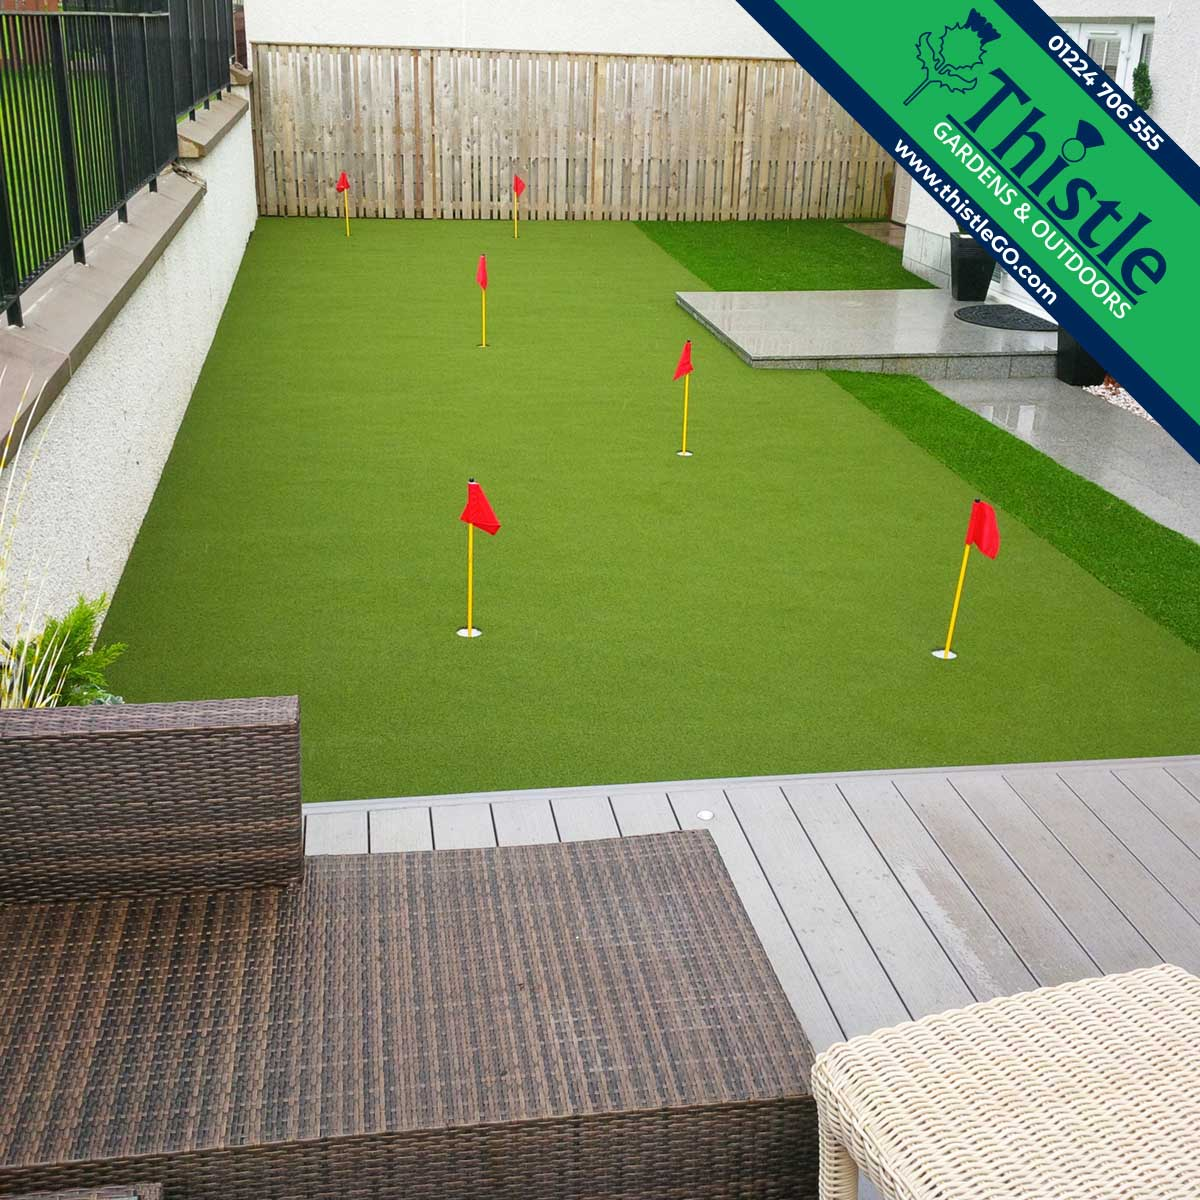 Thistle Artificial Grass Aberdeen, Aberdeenshire & North East Scotland: Putting Greens, Practice Areas & Golf Simulators